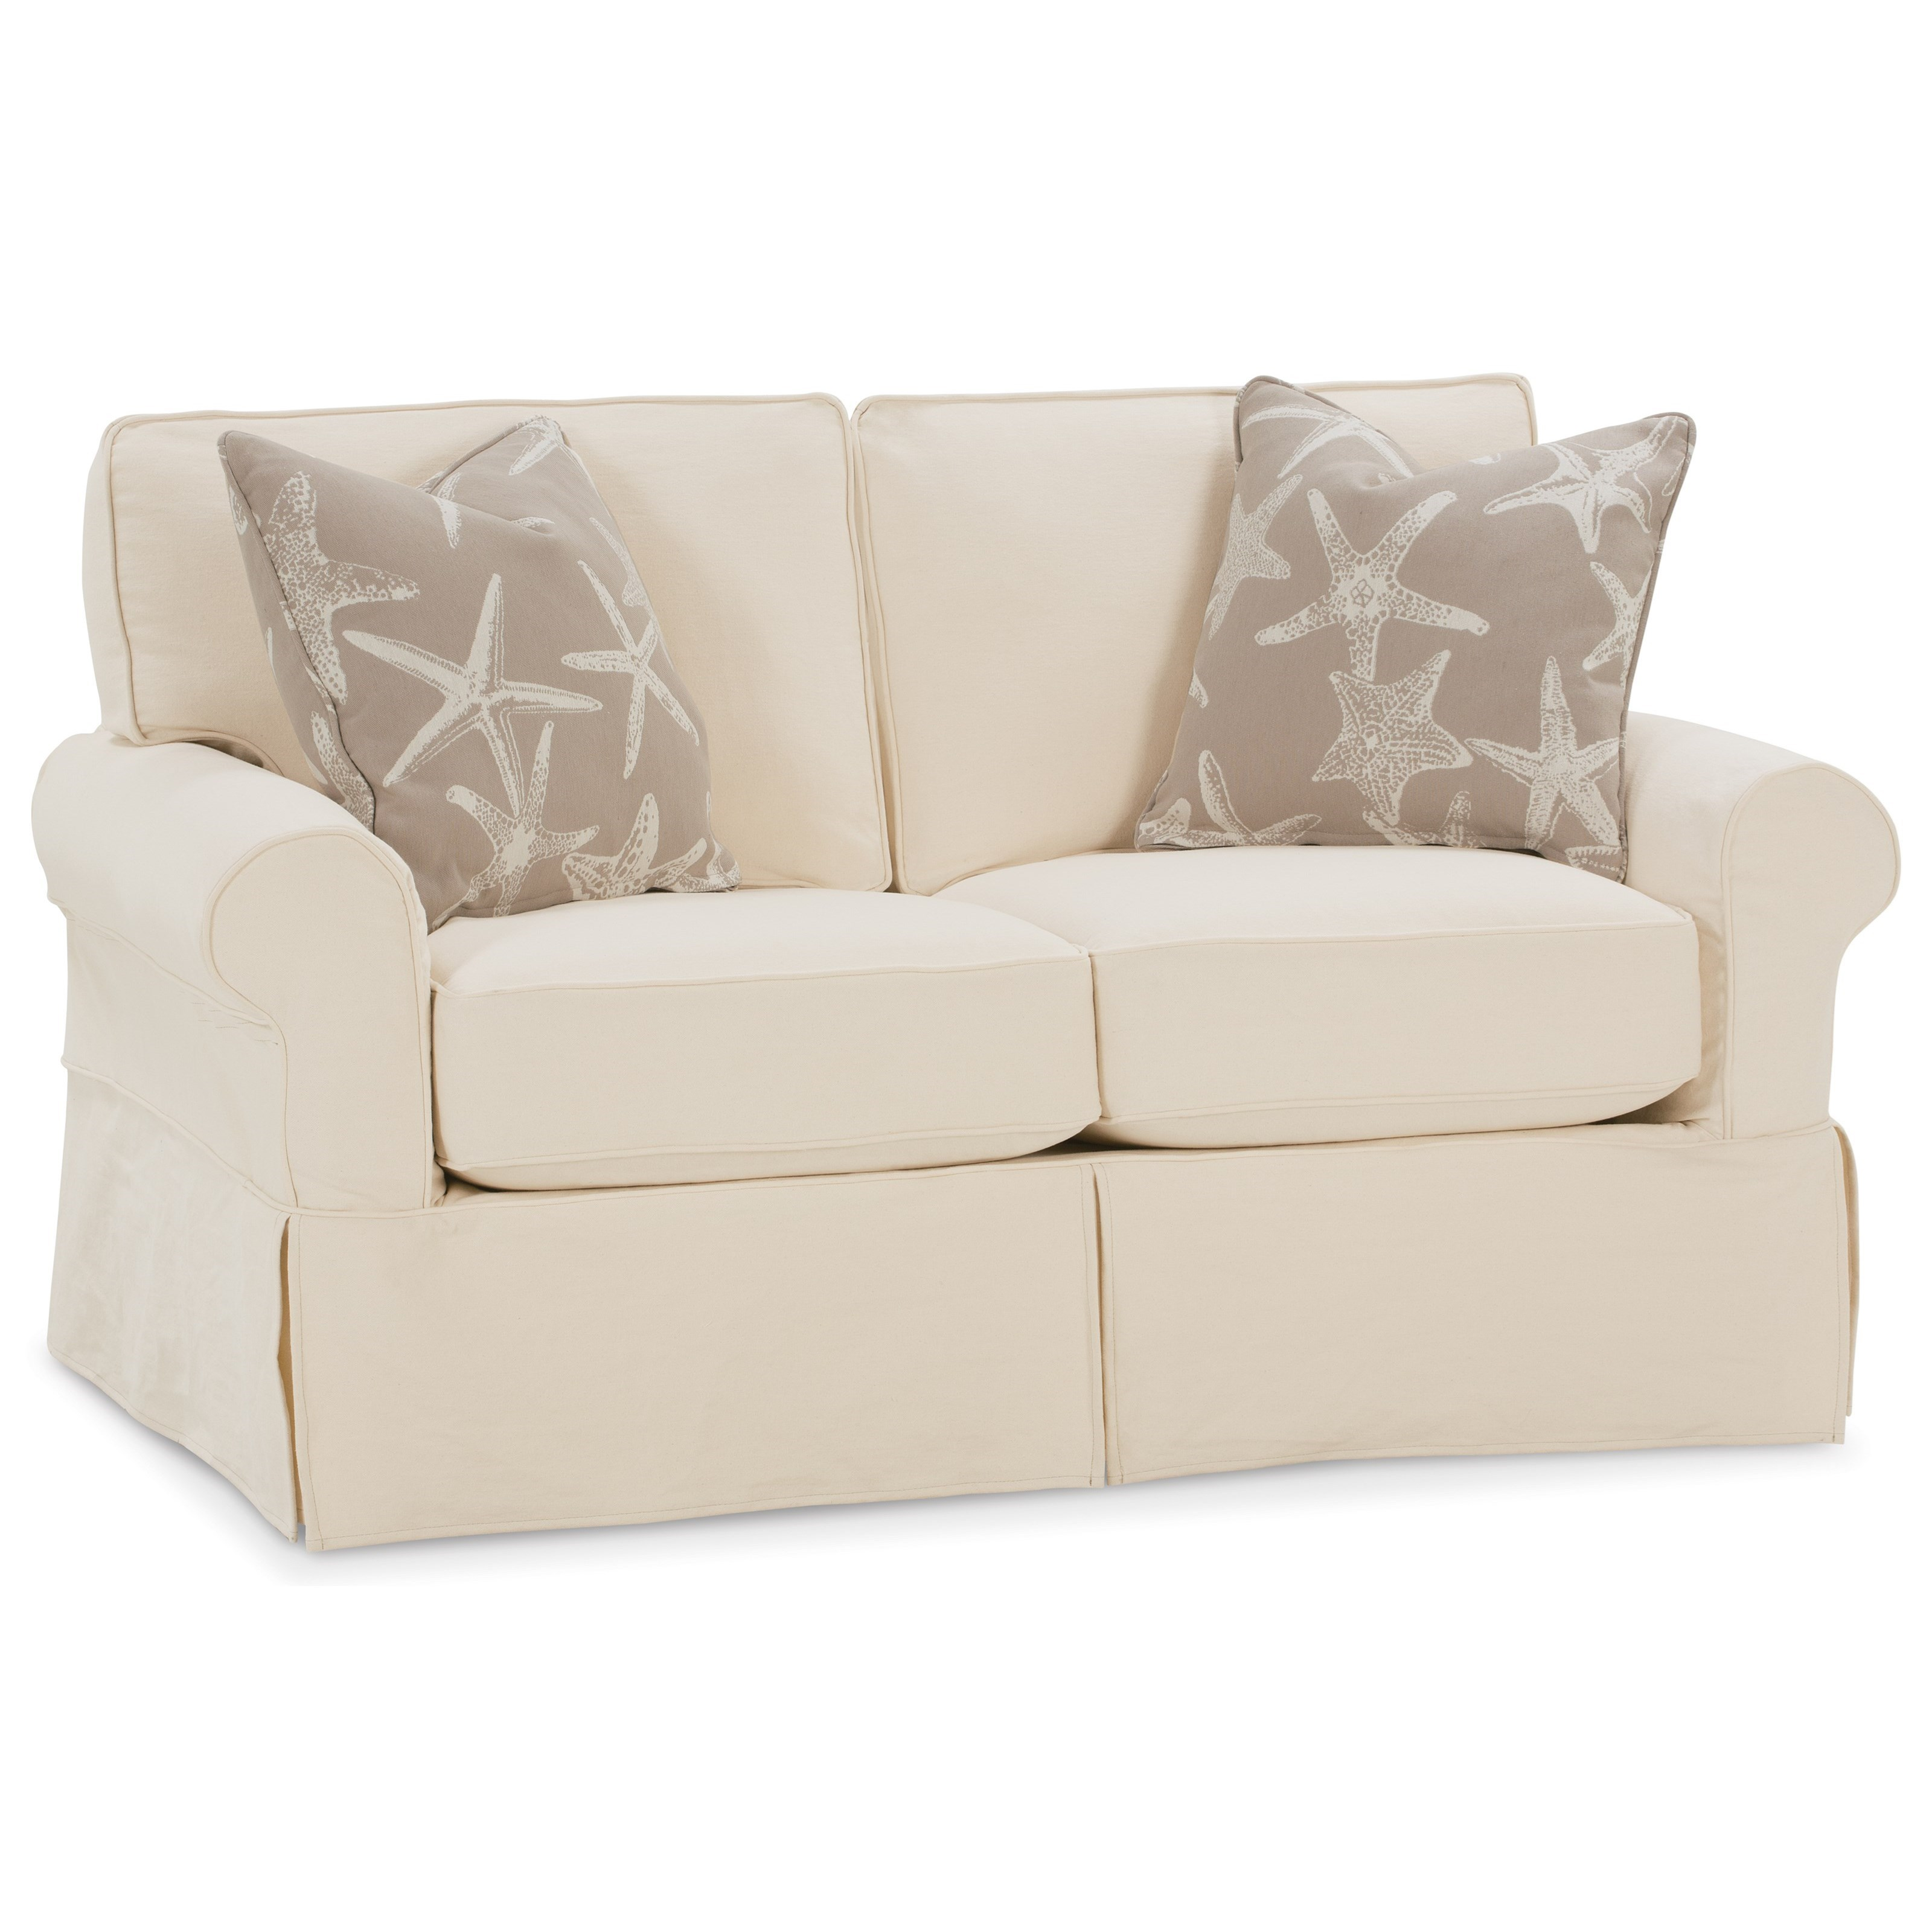 Nantucket  Transitional Loveseat by Rowe at Saugerties Furniture Mart